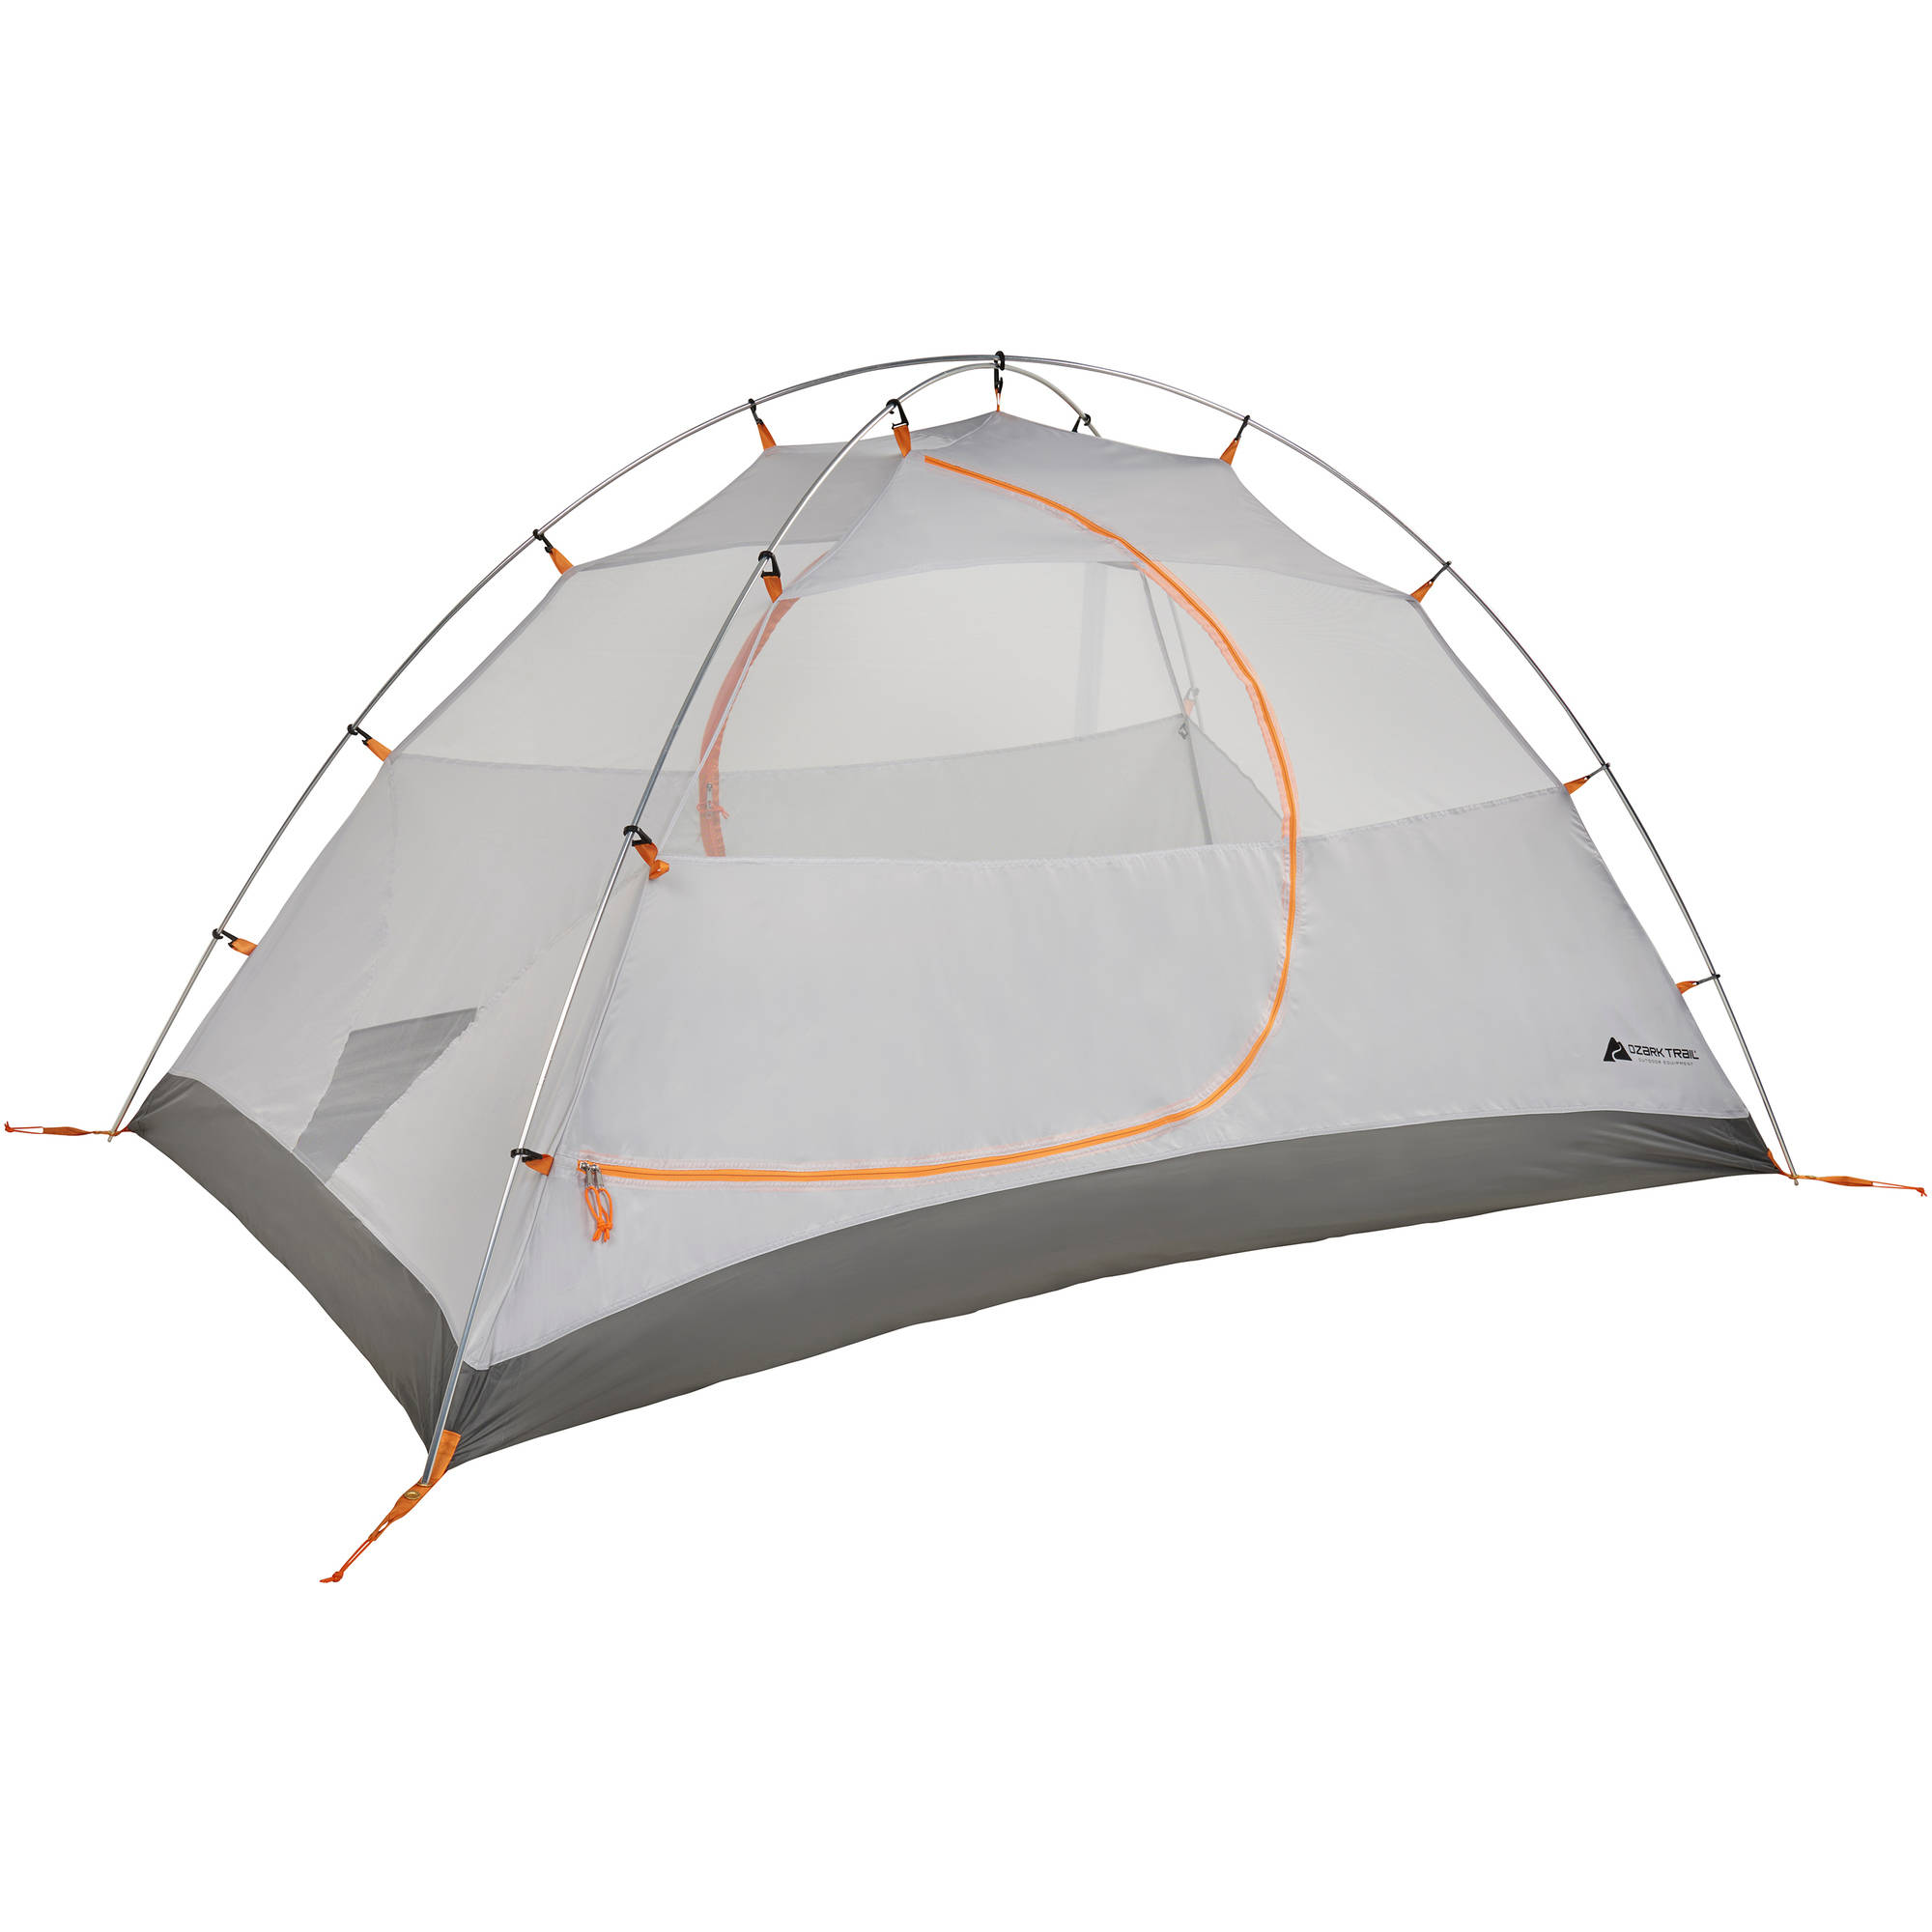 Ozark Trail Backpacking Tent with Vestibules, Sleeps 2